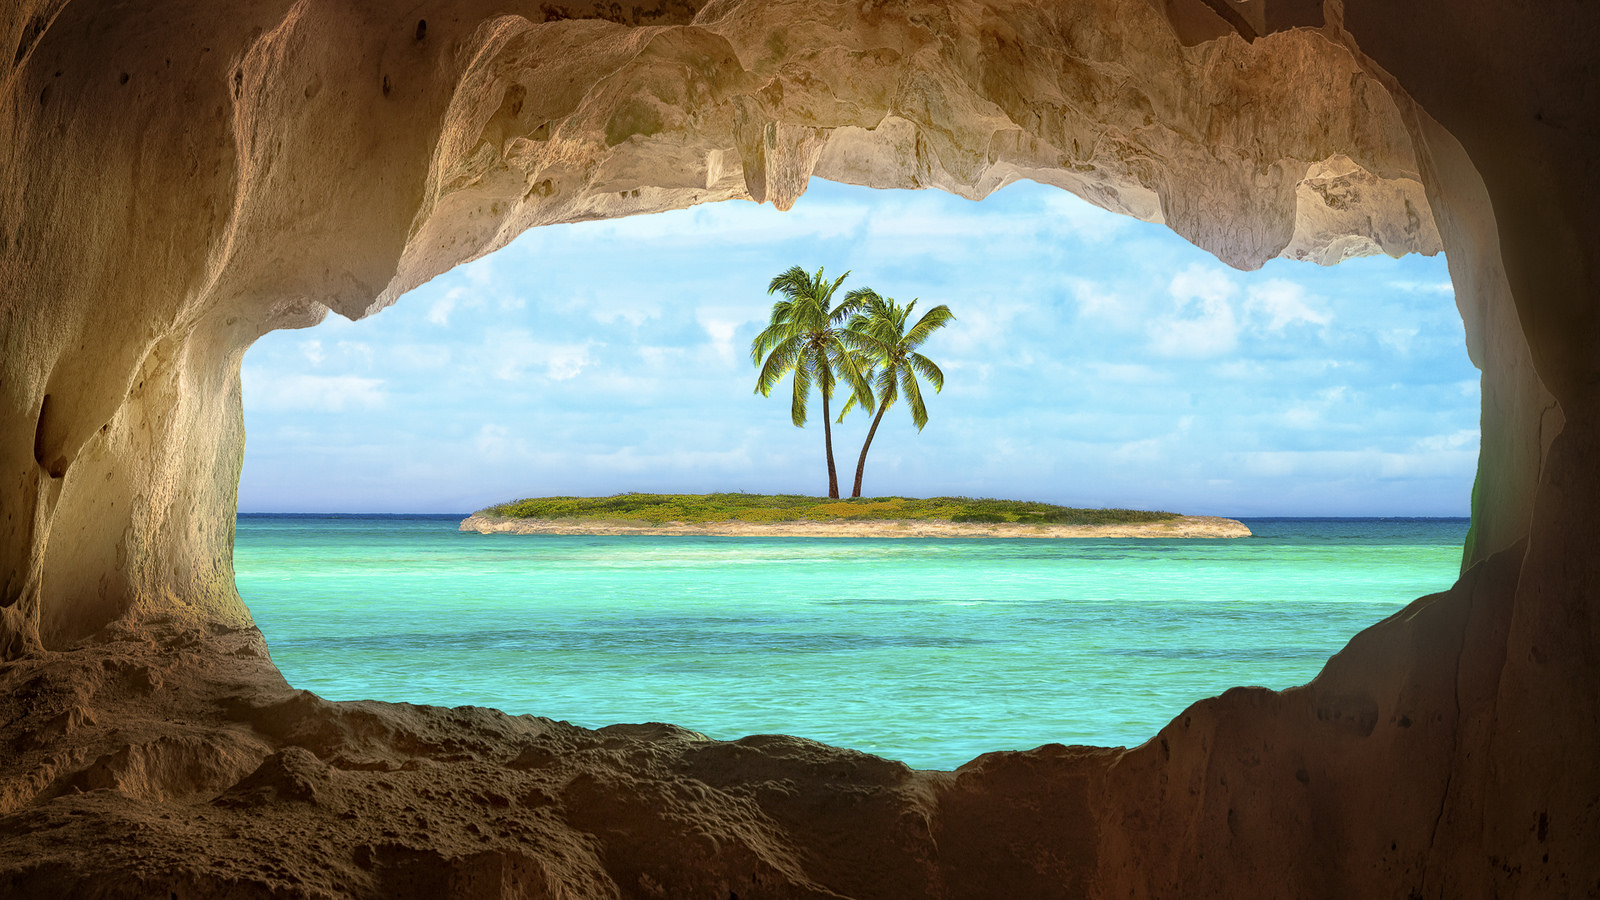 Tropical island seen through a hole in rock formation